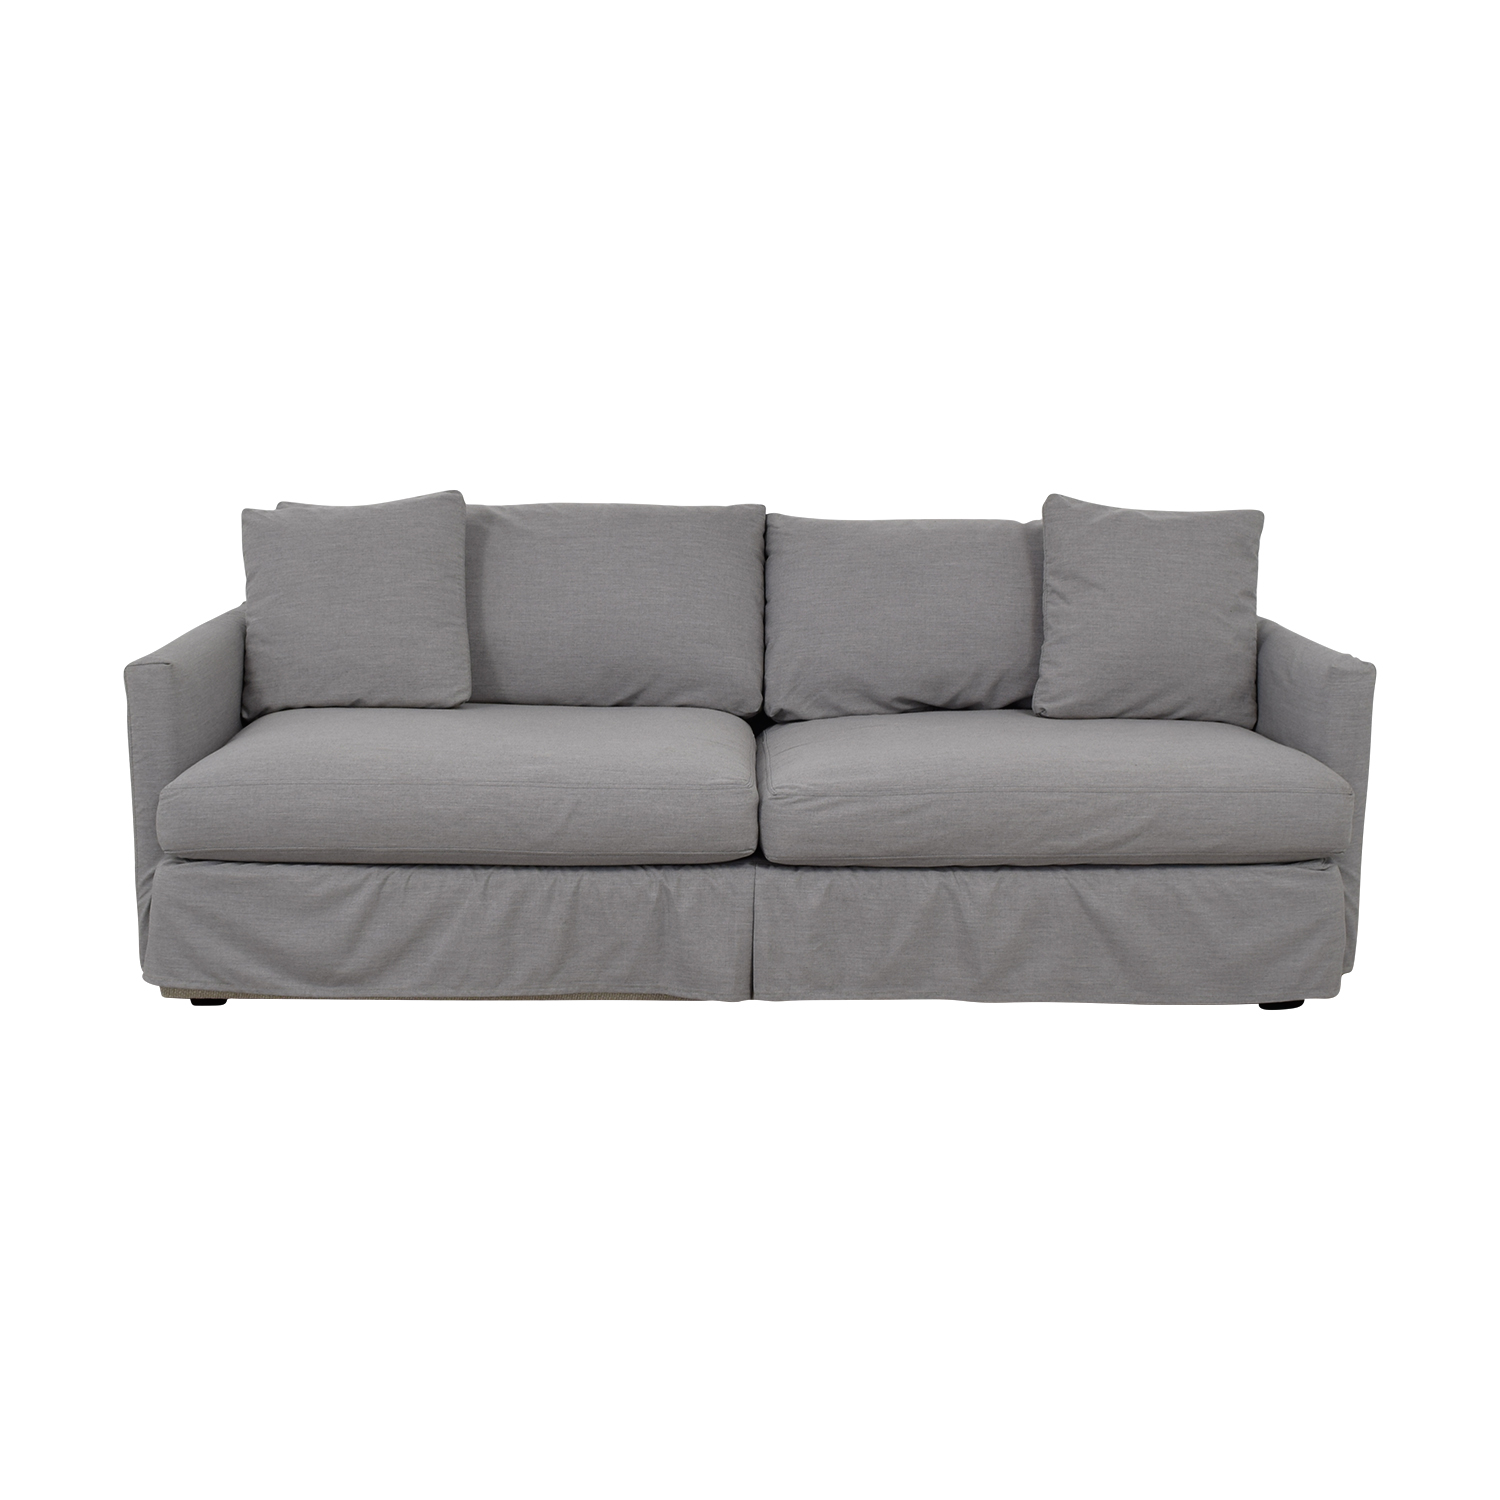 buy Crate & Barrel Lounge II Petite Grey Slipcovered Couch Crate & Barrel Classic Sofas